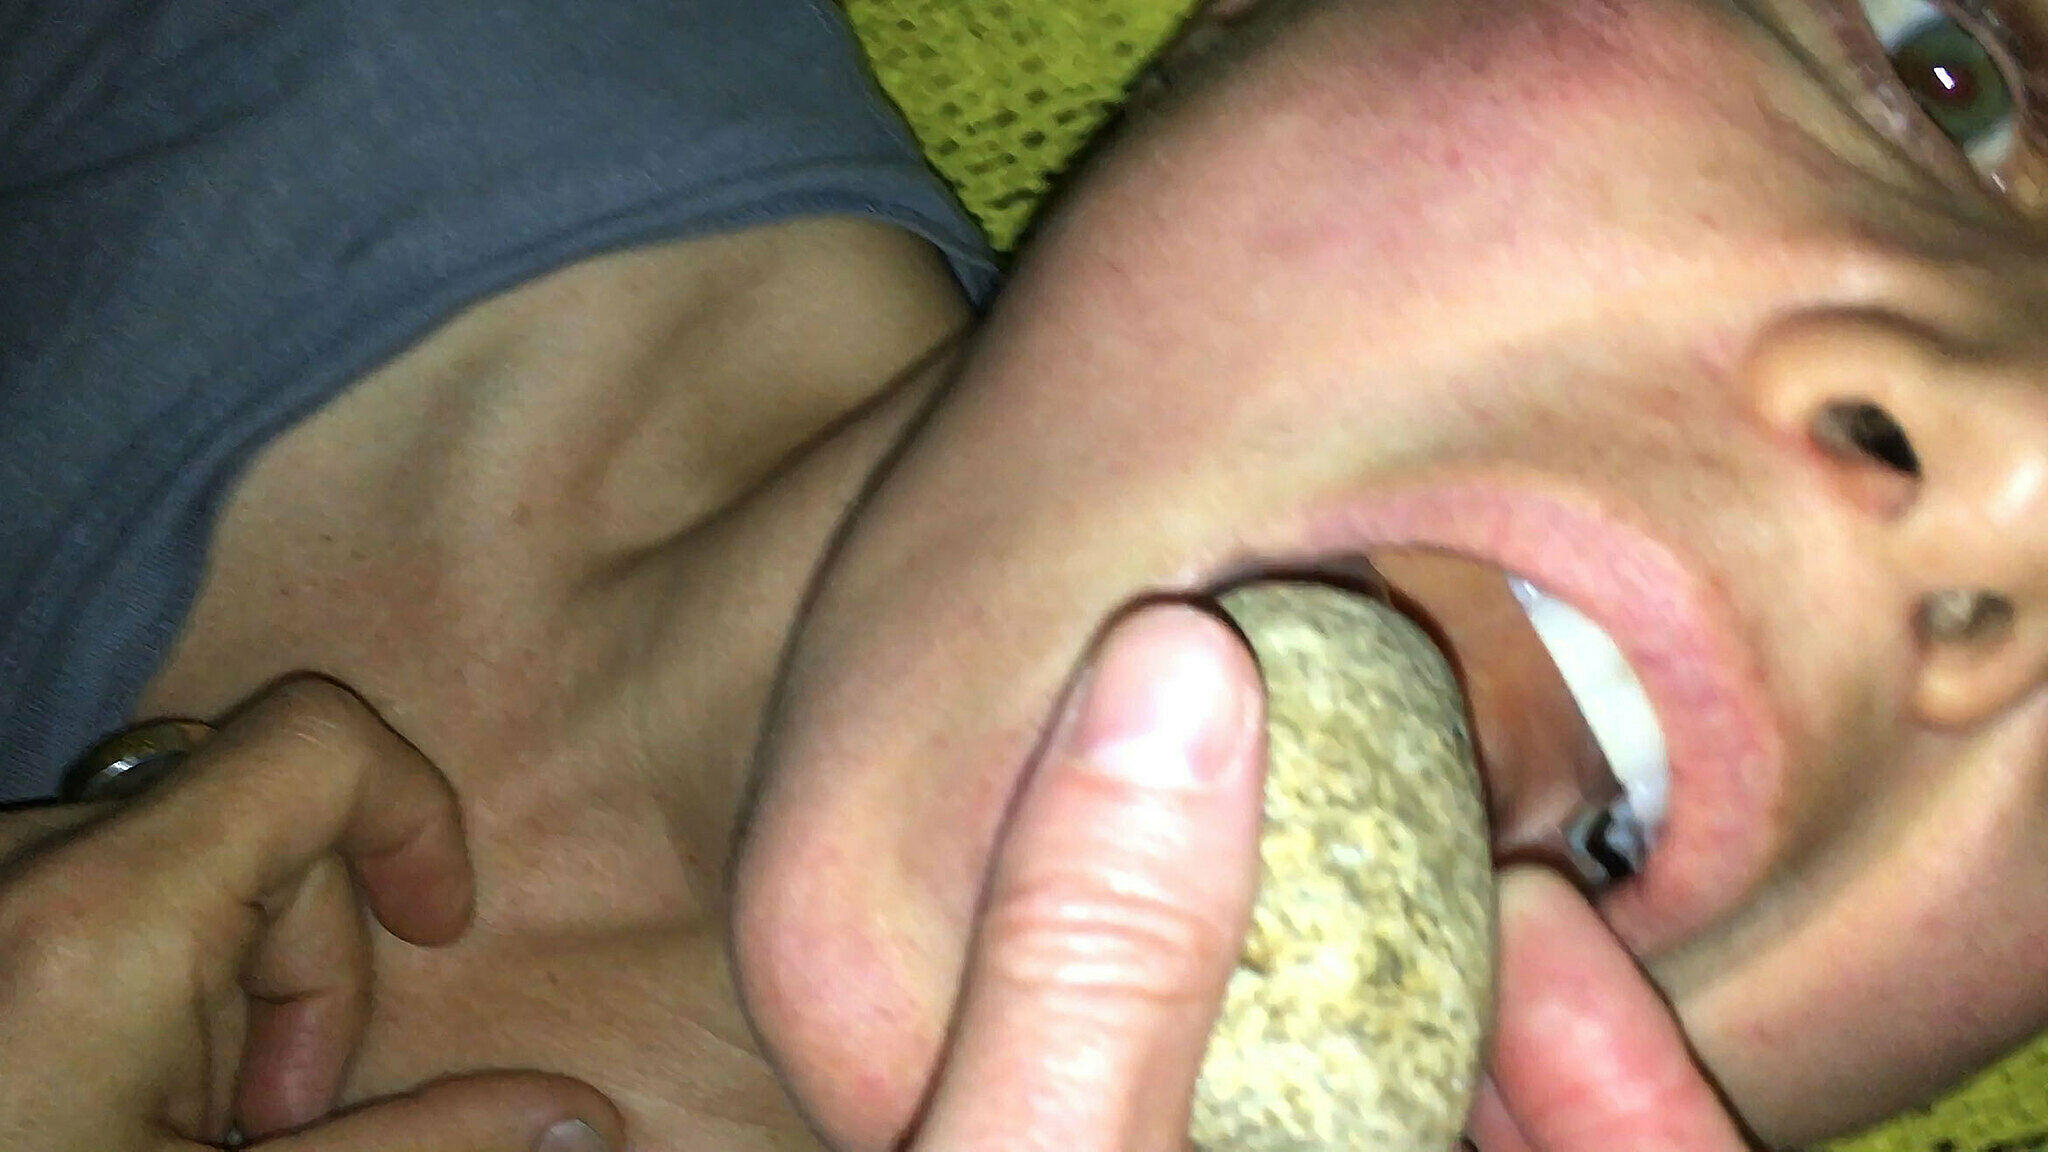 A video still of person putting a rock in their mouth.